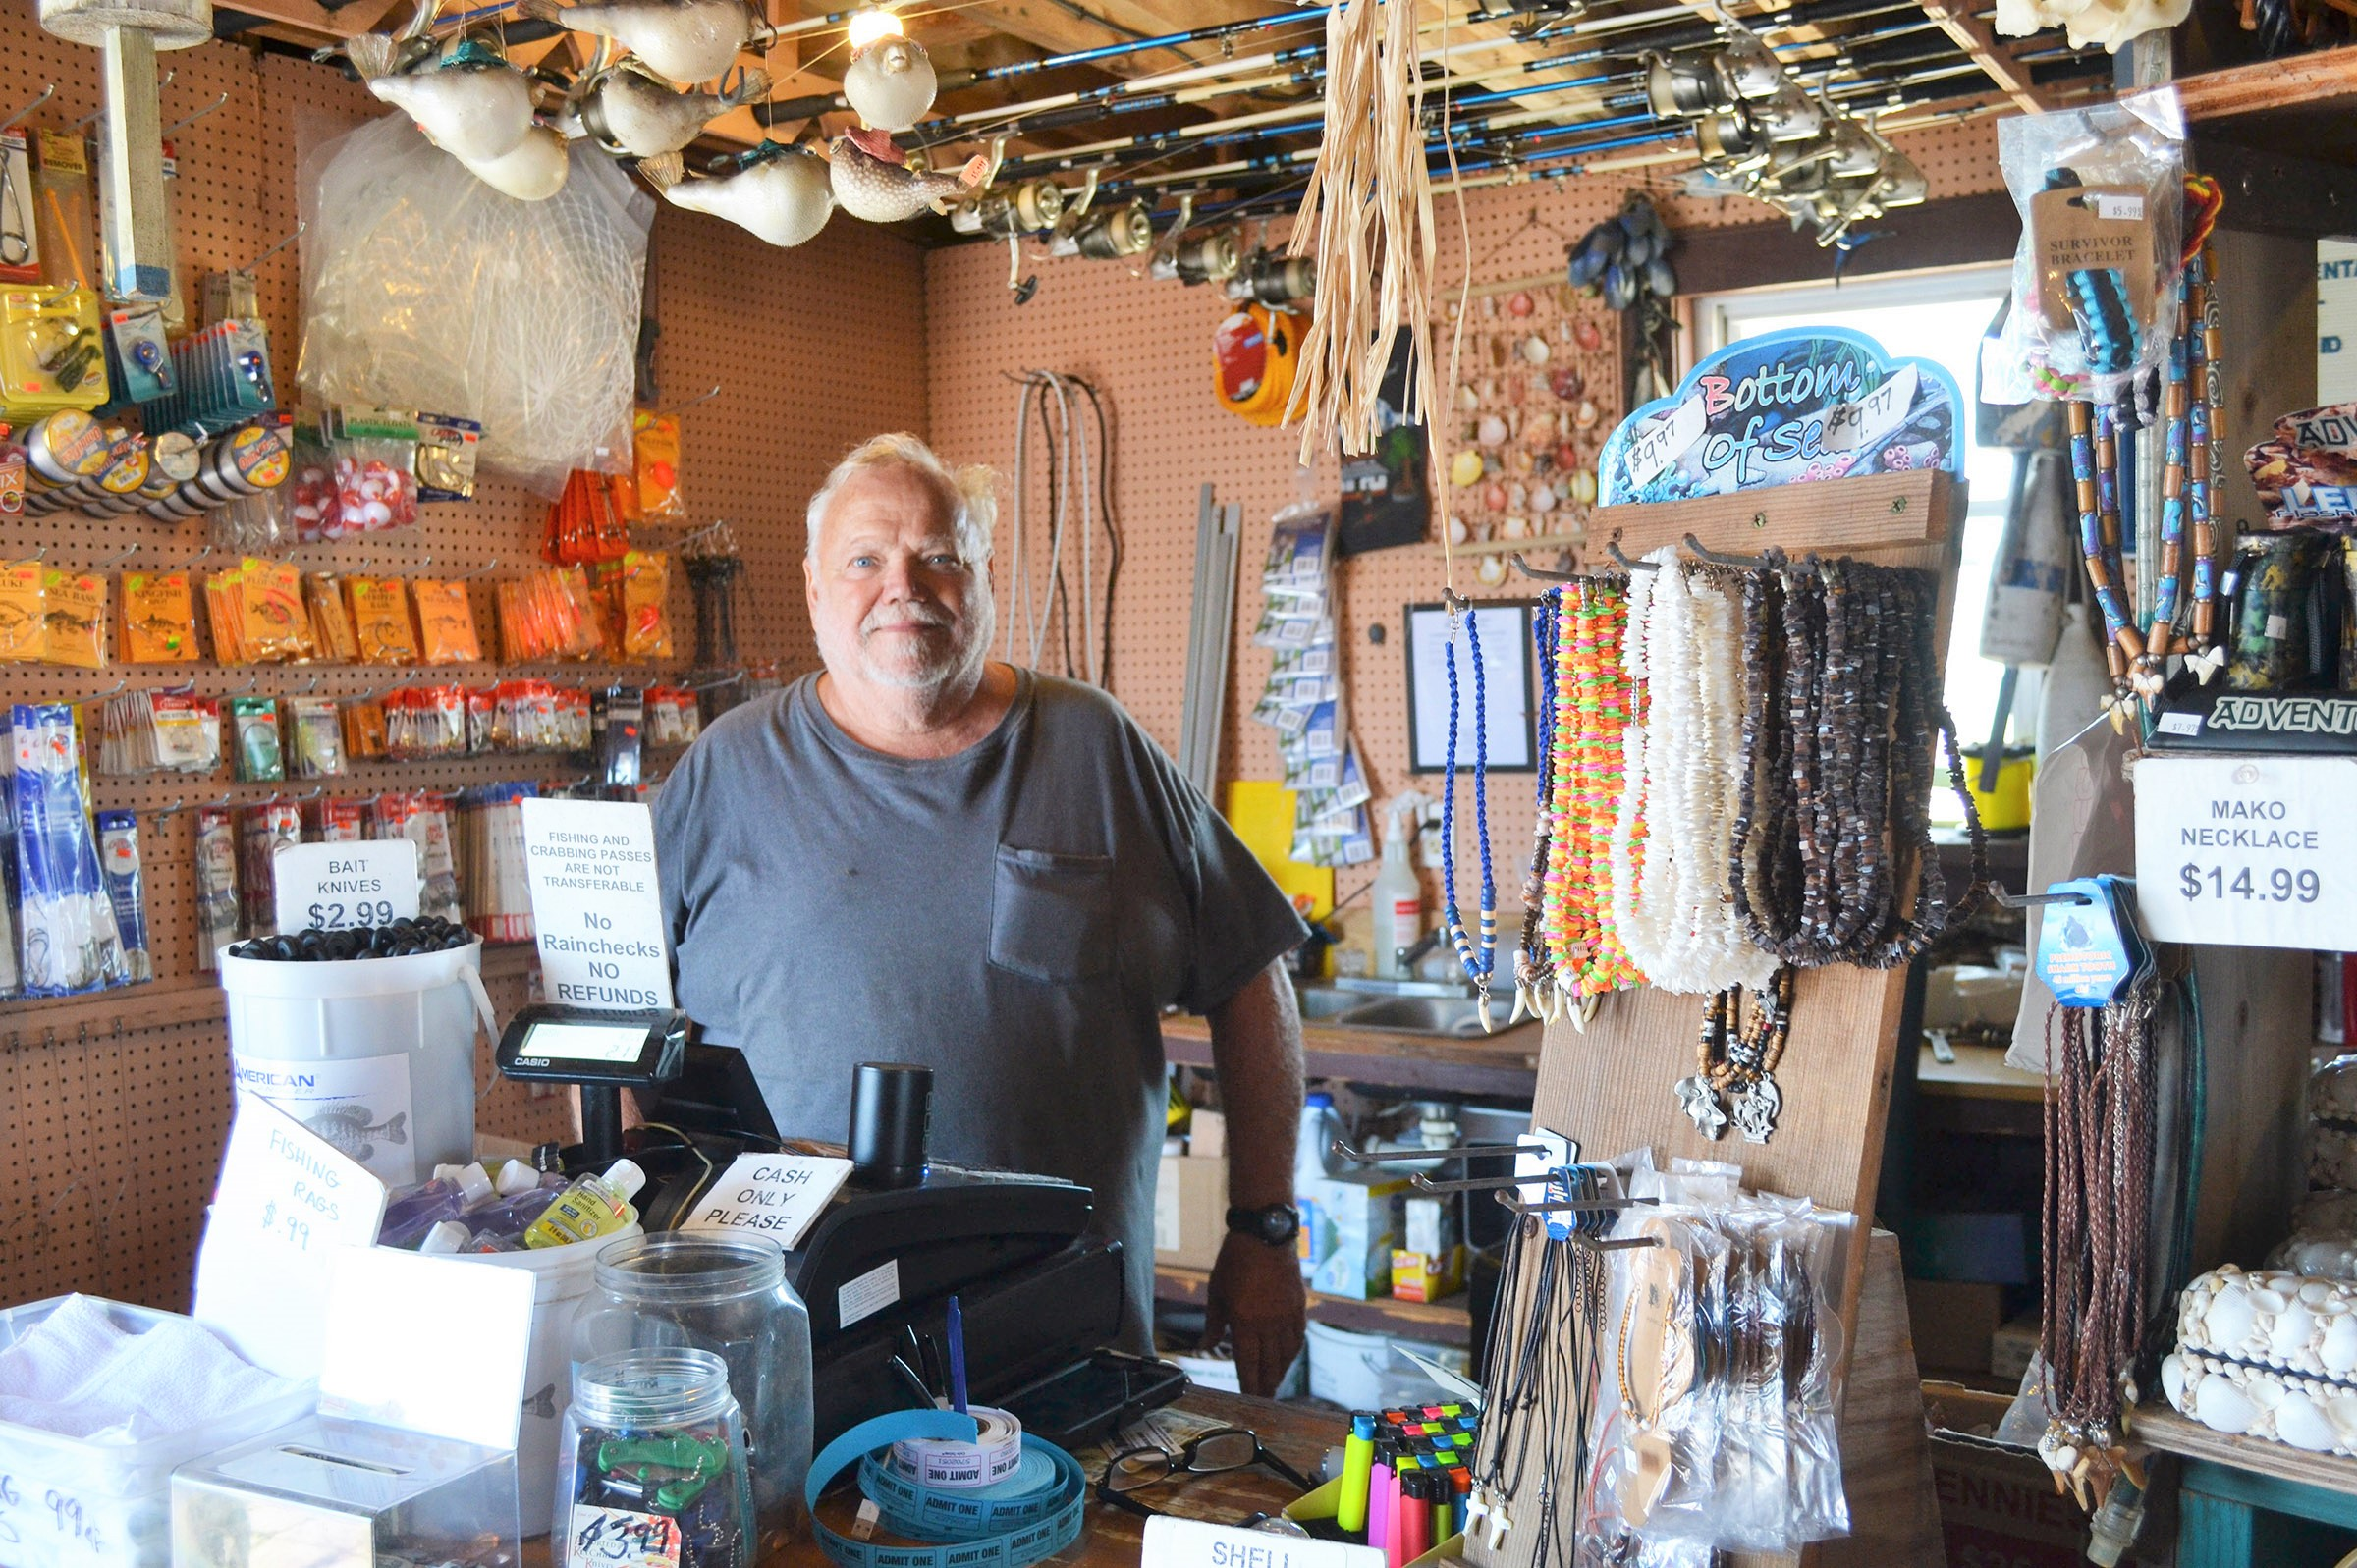 'Fishing Pier Pete' Loves His Job, Helping People; Jones A Mainstay On Wicomico Street For 23 Years